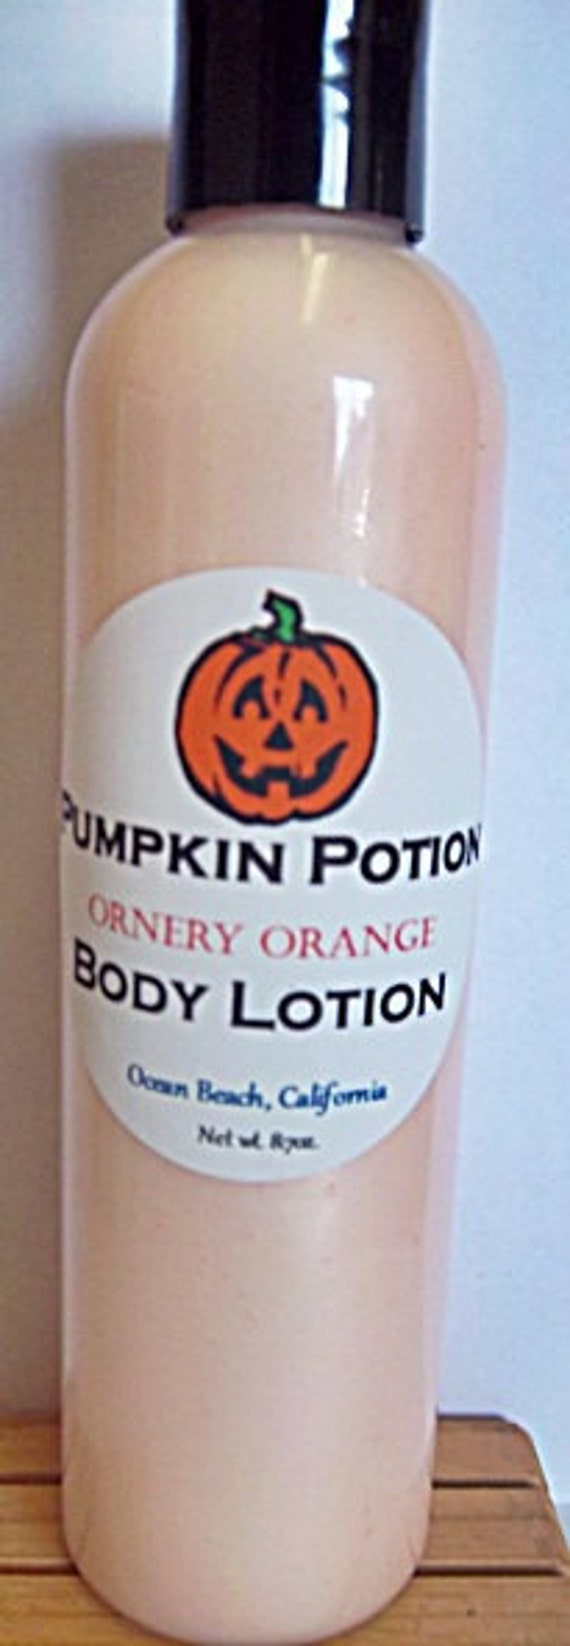 Pumpkin Potion Body Lotion in Ornery Orange Scent-8oz.